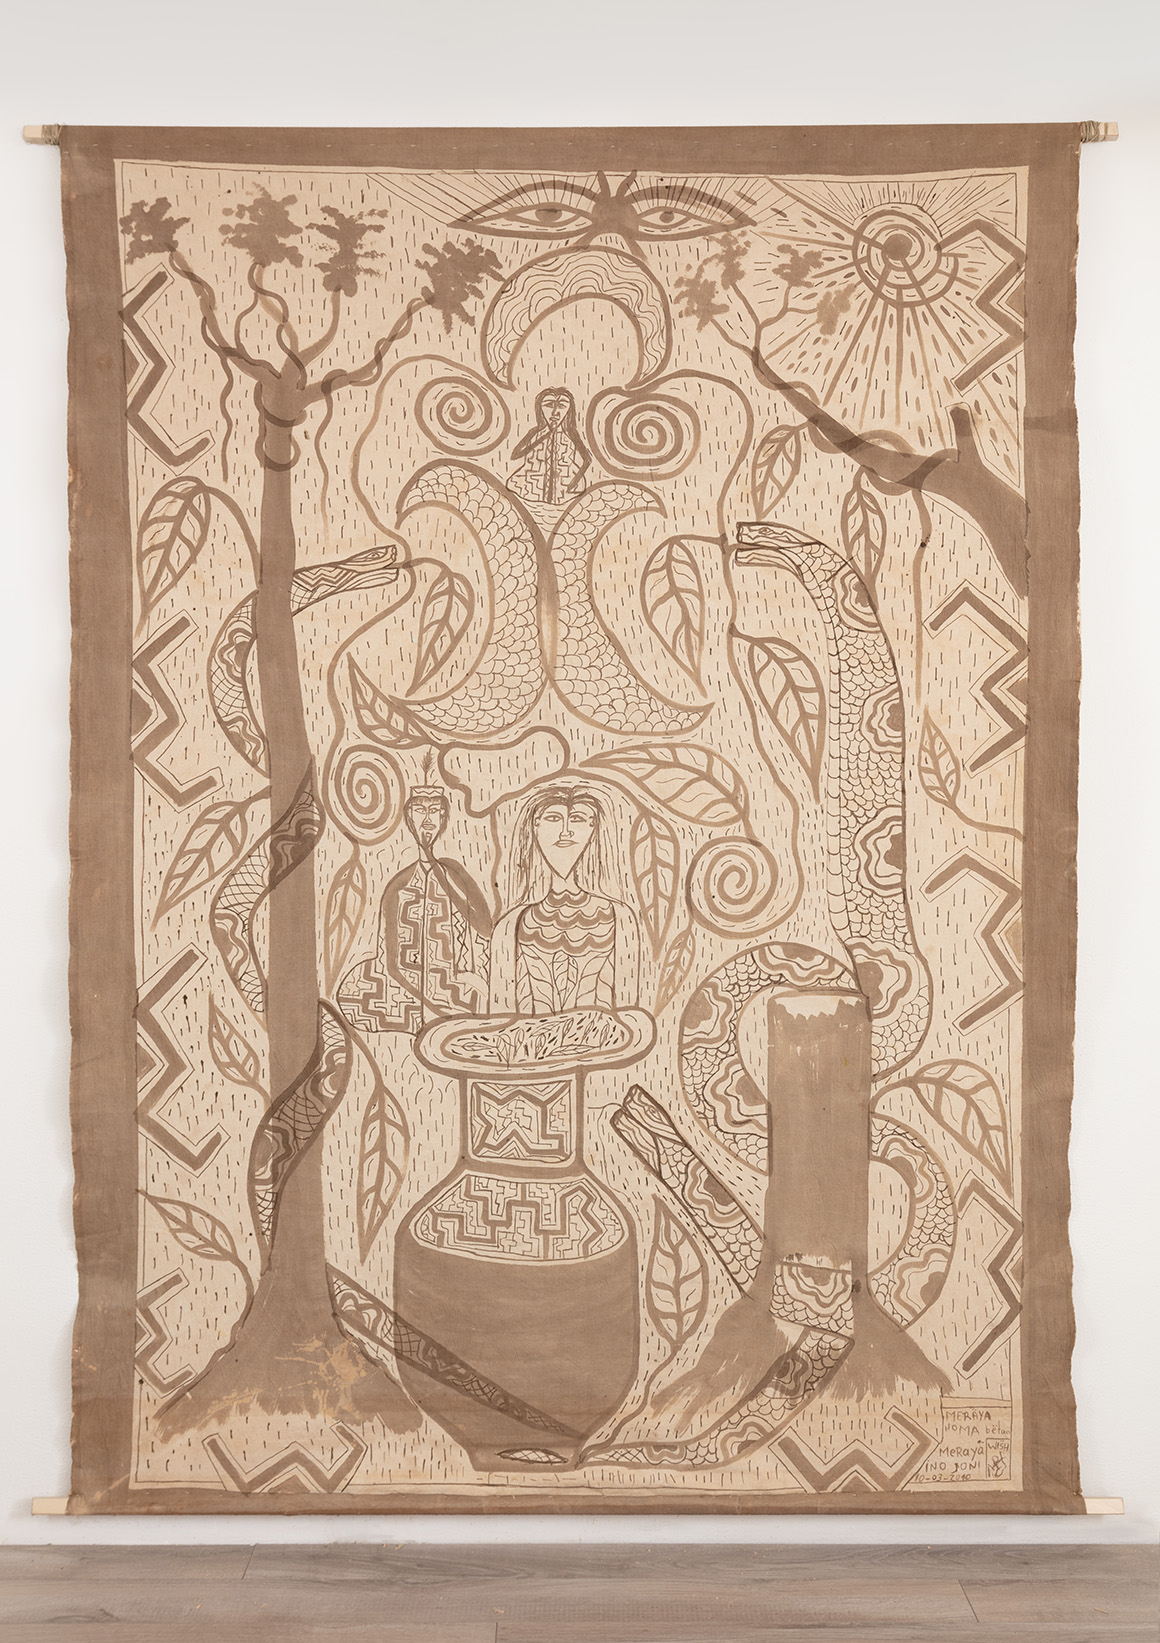 <p><em>La Mujer Curandera y el Hombre Jaguar Curandero</em><span class='media'>Ayahuasca on fabric</span>81 x 62 in(205.7 x 157.5 cm)<br>2018<br><a class='inquire' href='mailto:info@gildargallery.com?subject=Artwork Inquiry FAPE0005&body=I am interested in finding out more about La Mujer Curandera y el Hombre Jaguar Curandero by The Estate of Filder Agustín Peña'>Inquire</a></p>